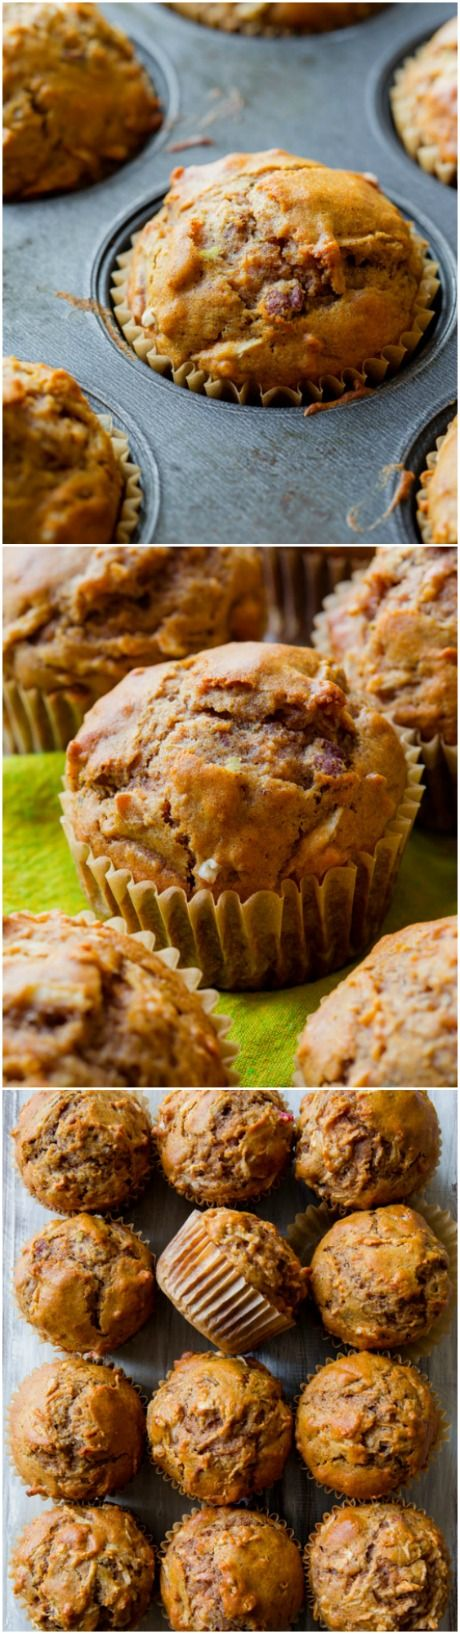 Hearty, healthy, and satisfying whole wheat muffins filled with sweet apples and plenty of cinnamon spice! With zero refined sugar, by the way. (!!!) Yep, I went there. The streak of healthy goodnesscontinues. And guess what? Kevin loved these muffins. Not for one little second realizing that hello… they're (1) whole wheat, (2) filled with …